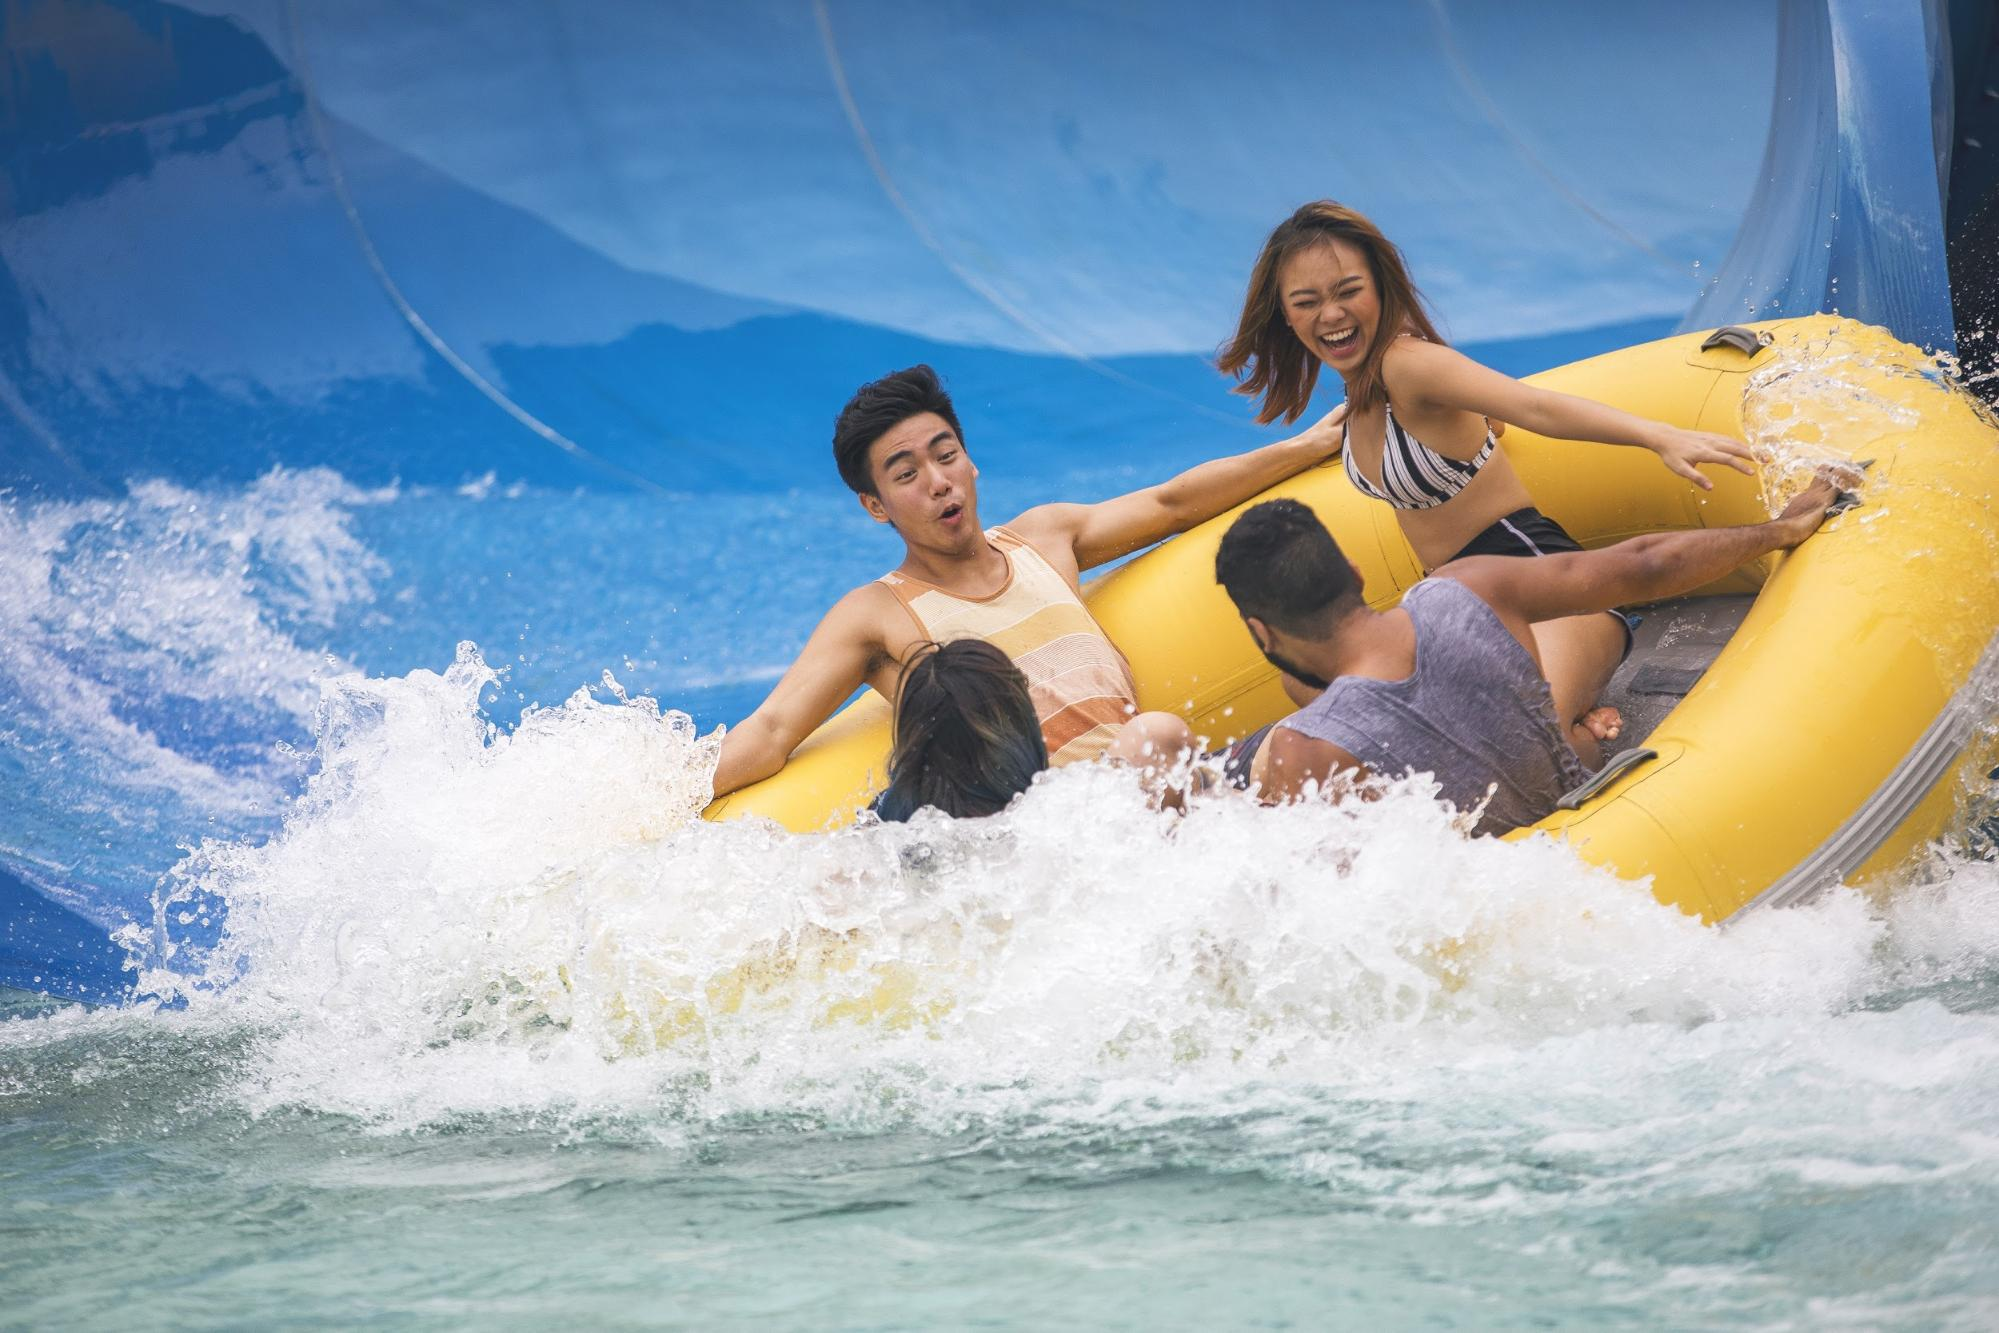 Wild Wild Wet Now Has Free Admission Passes & Student Meals To KIV For Your Eastside Outing raft